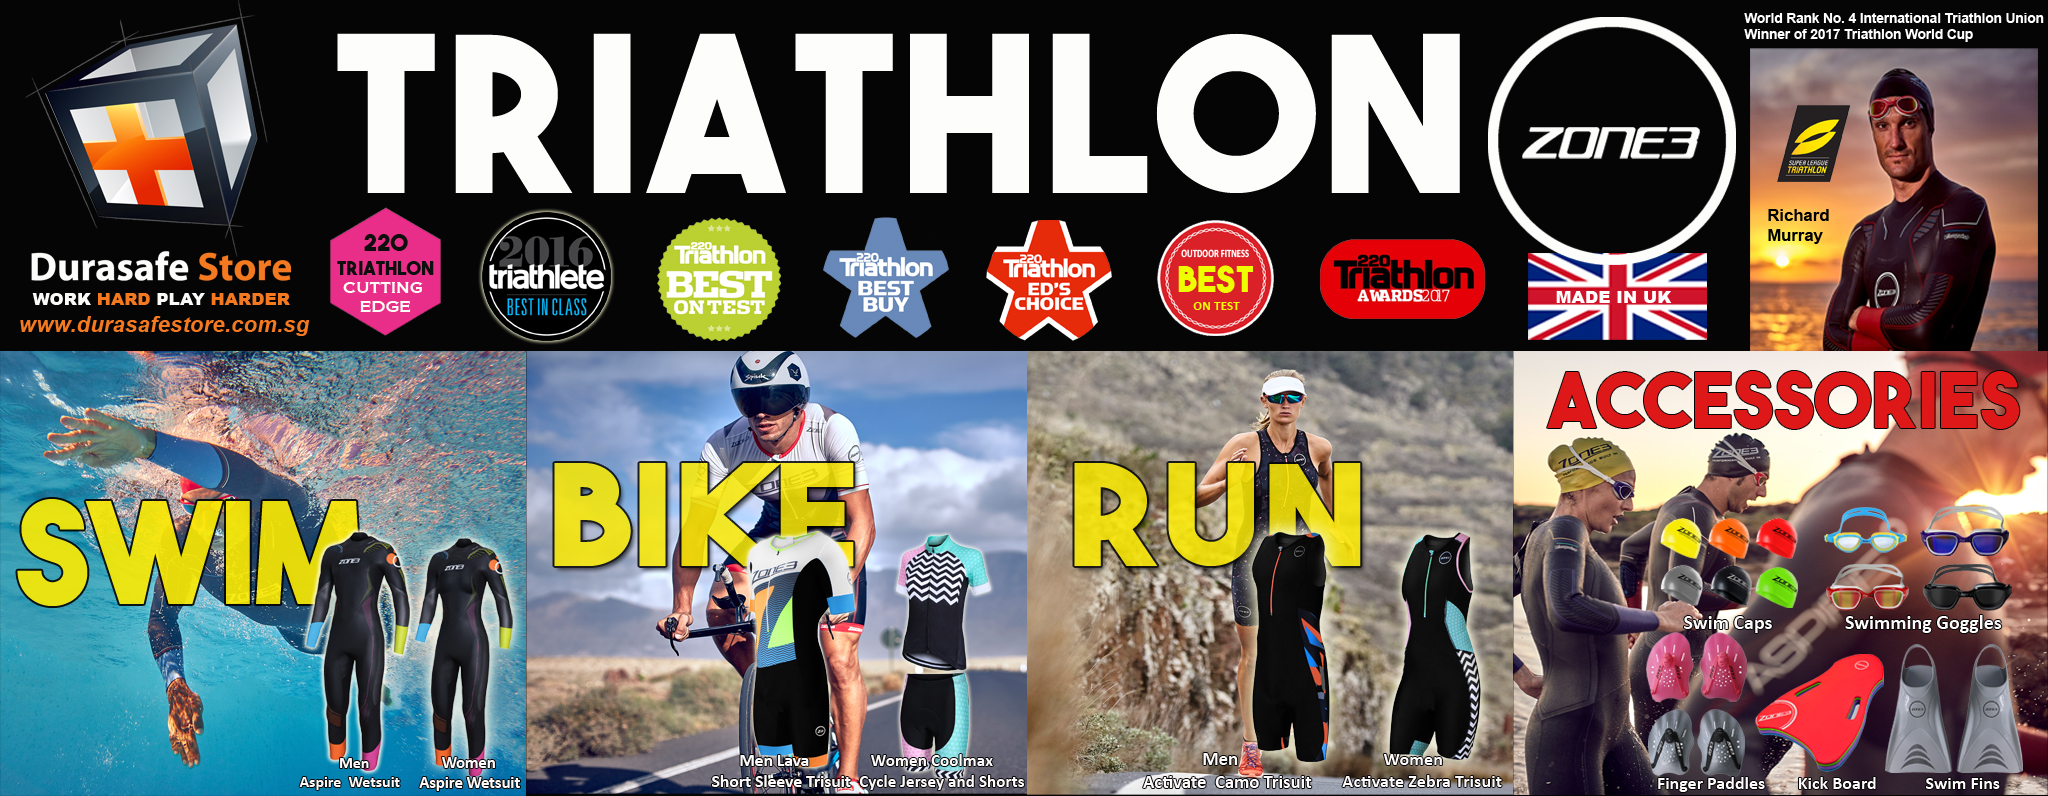 zone3 triathlon new banner